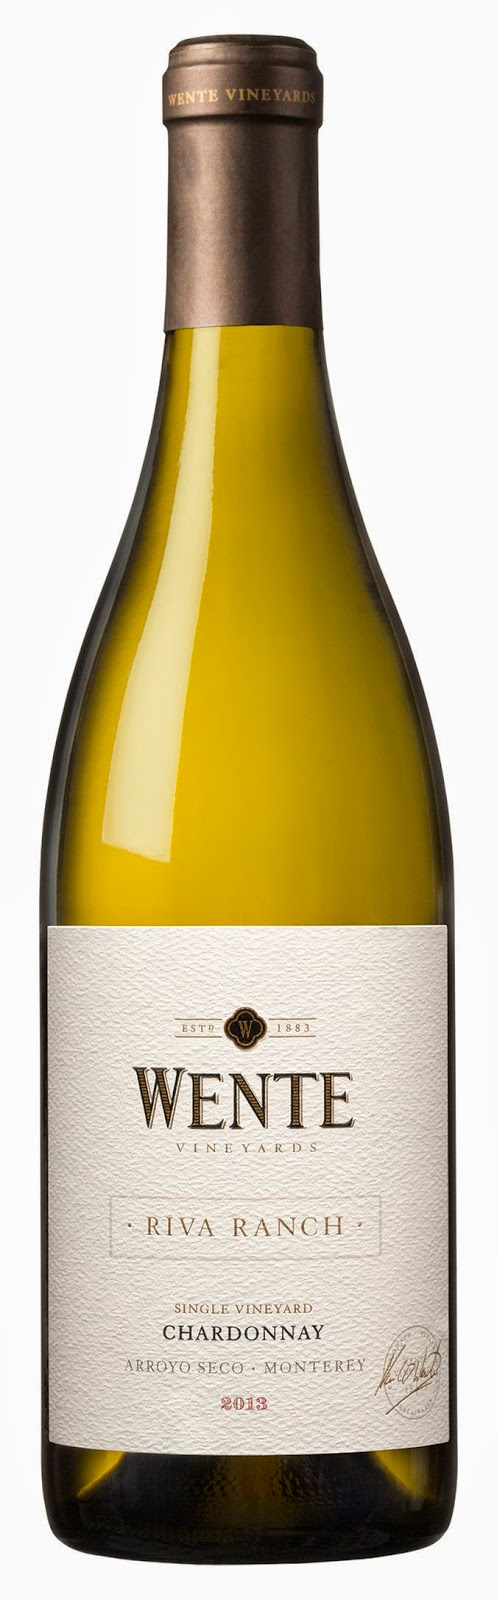 Wente Riva Ranch Single Vineyard Chardonnay